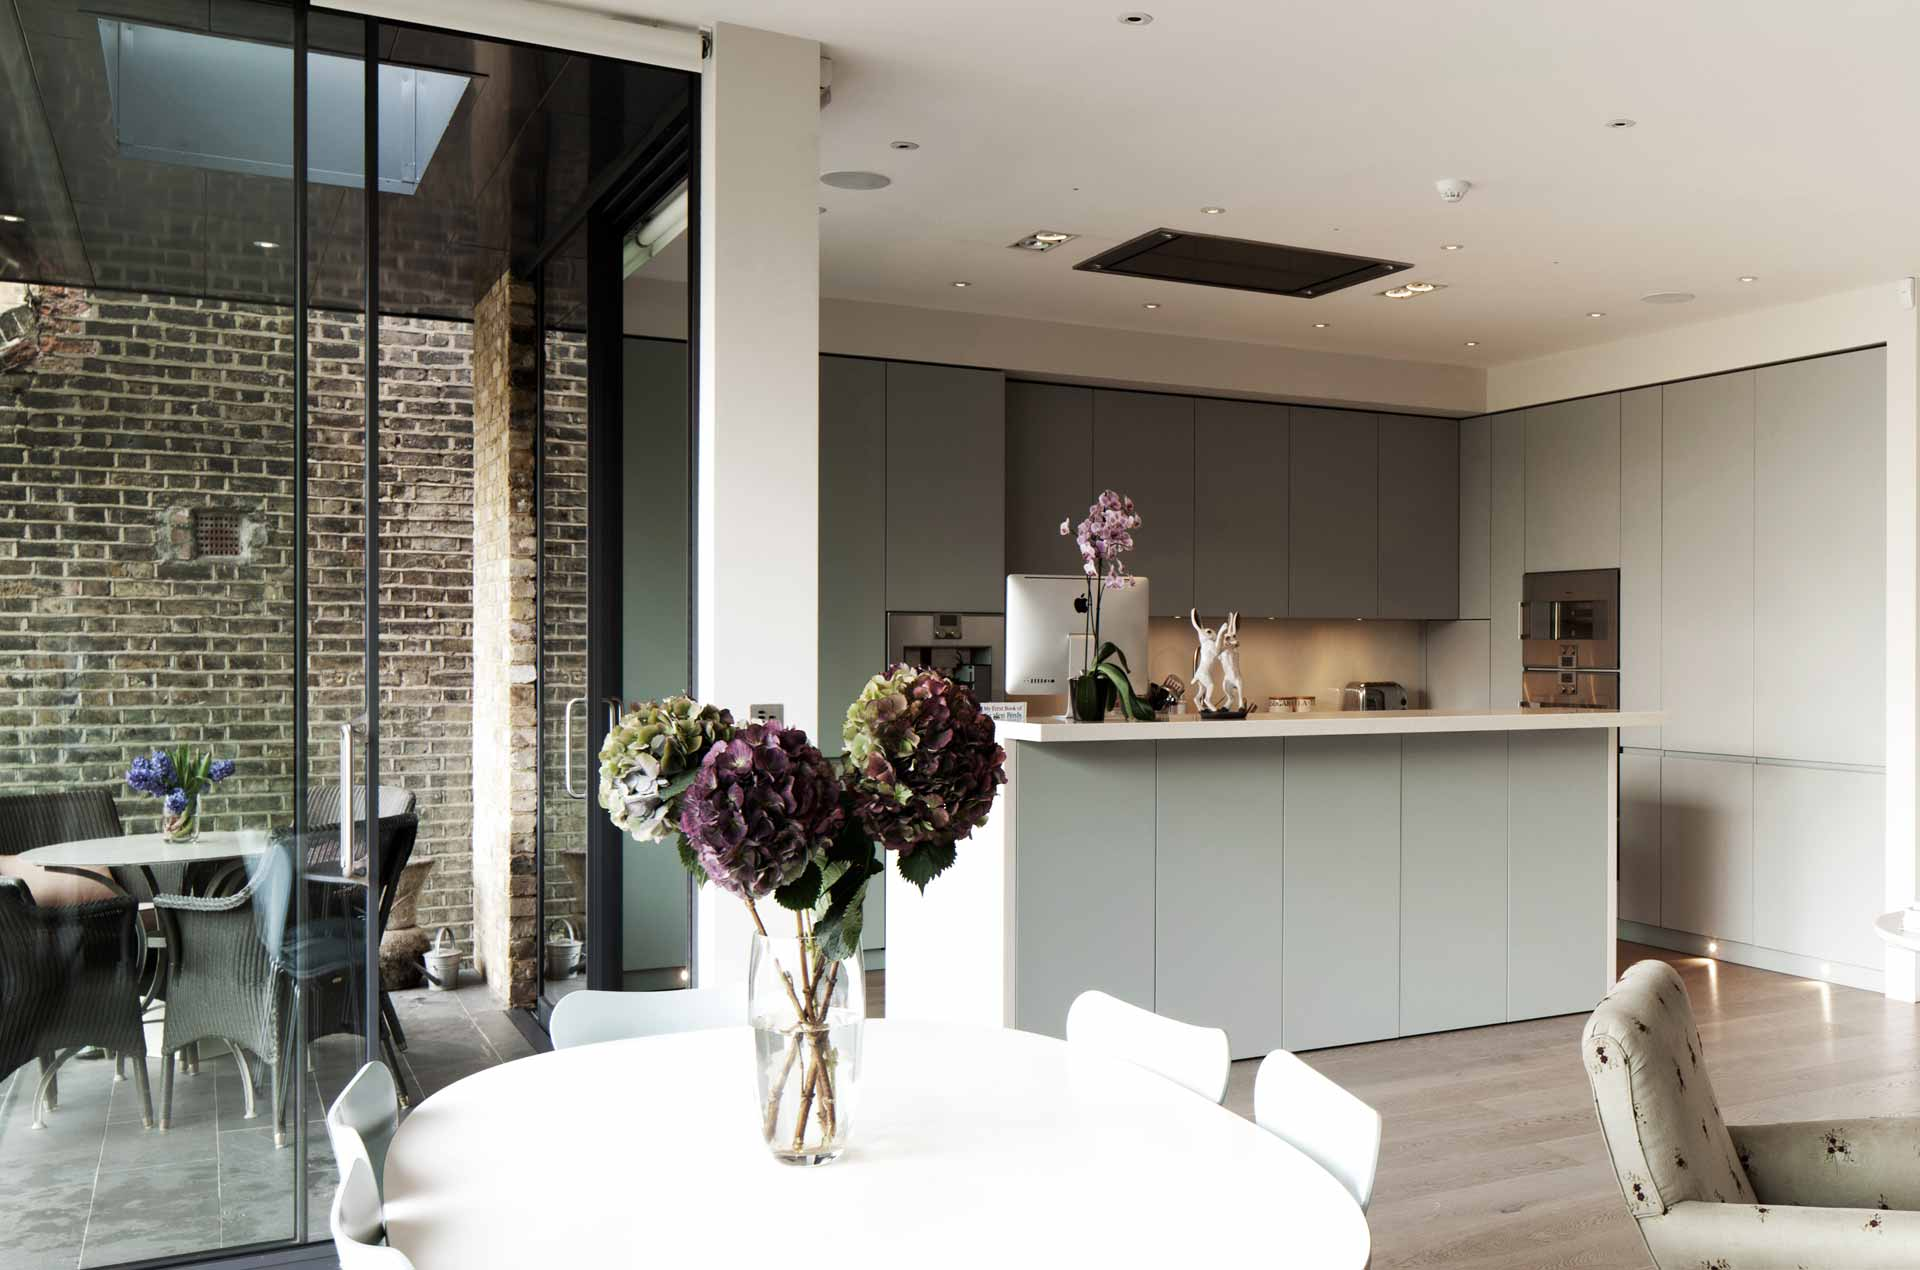 Bolingbroke Grove Wandsworth 2-Storey Extension, New Basement And Full Refurbishment 07